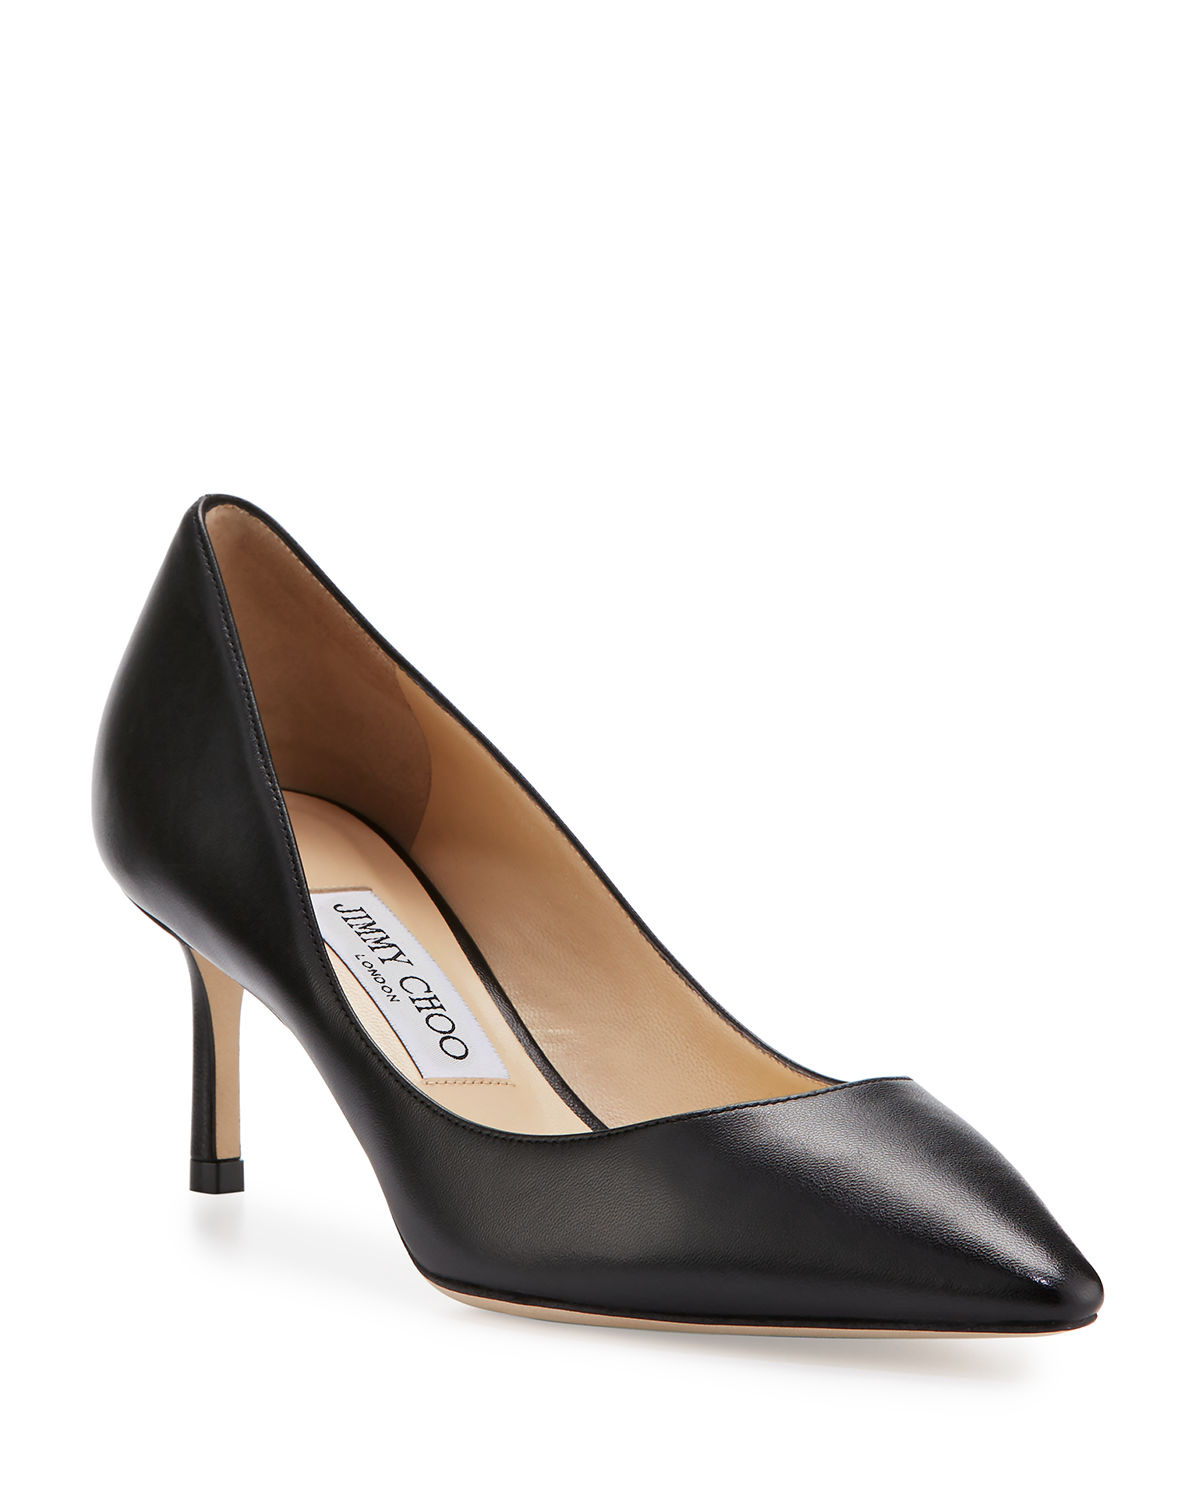 Romy 60mm Leather Pumps